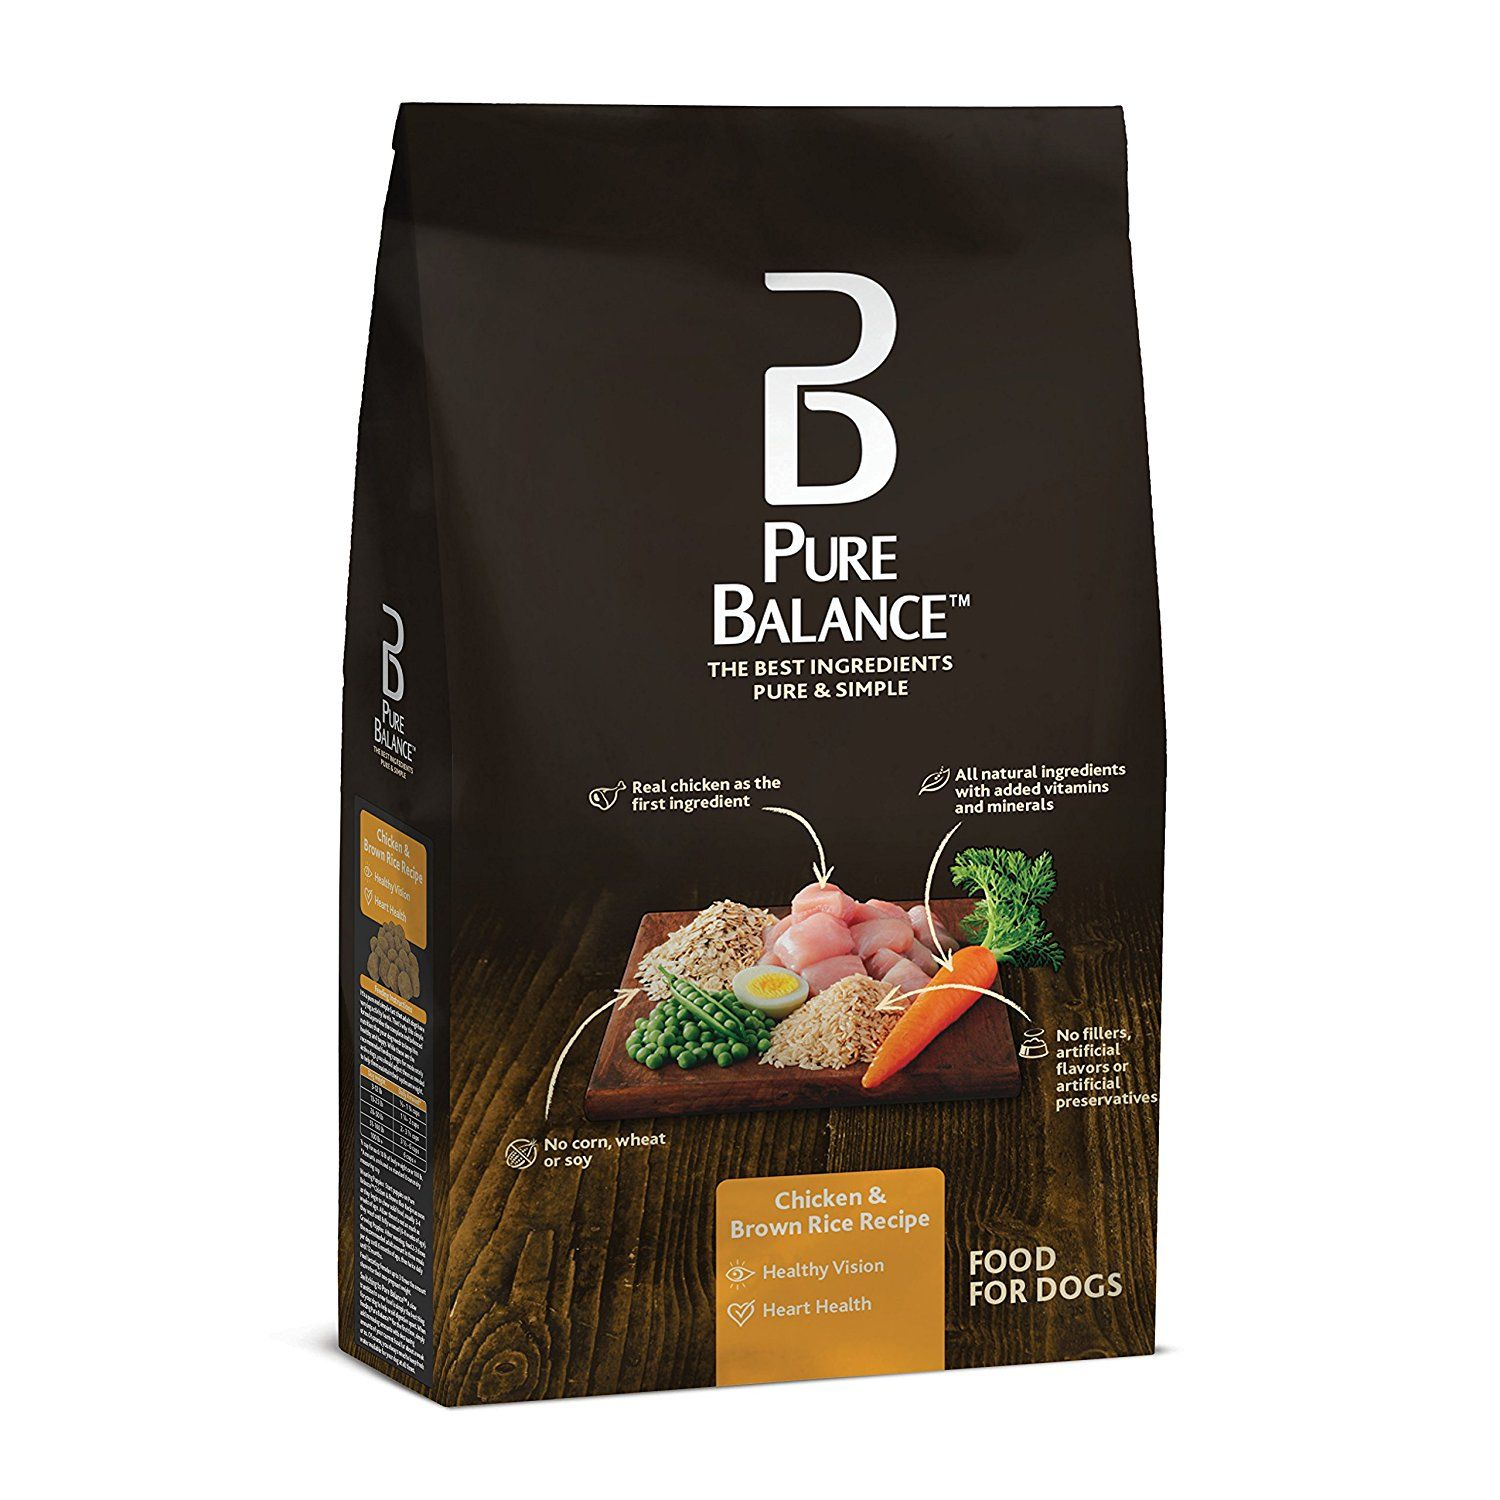 Pure Balance Dog Food, Chicken and Brown Rice Recipe, 15